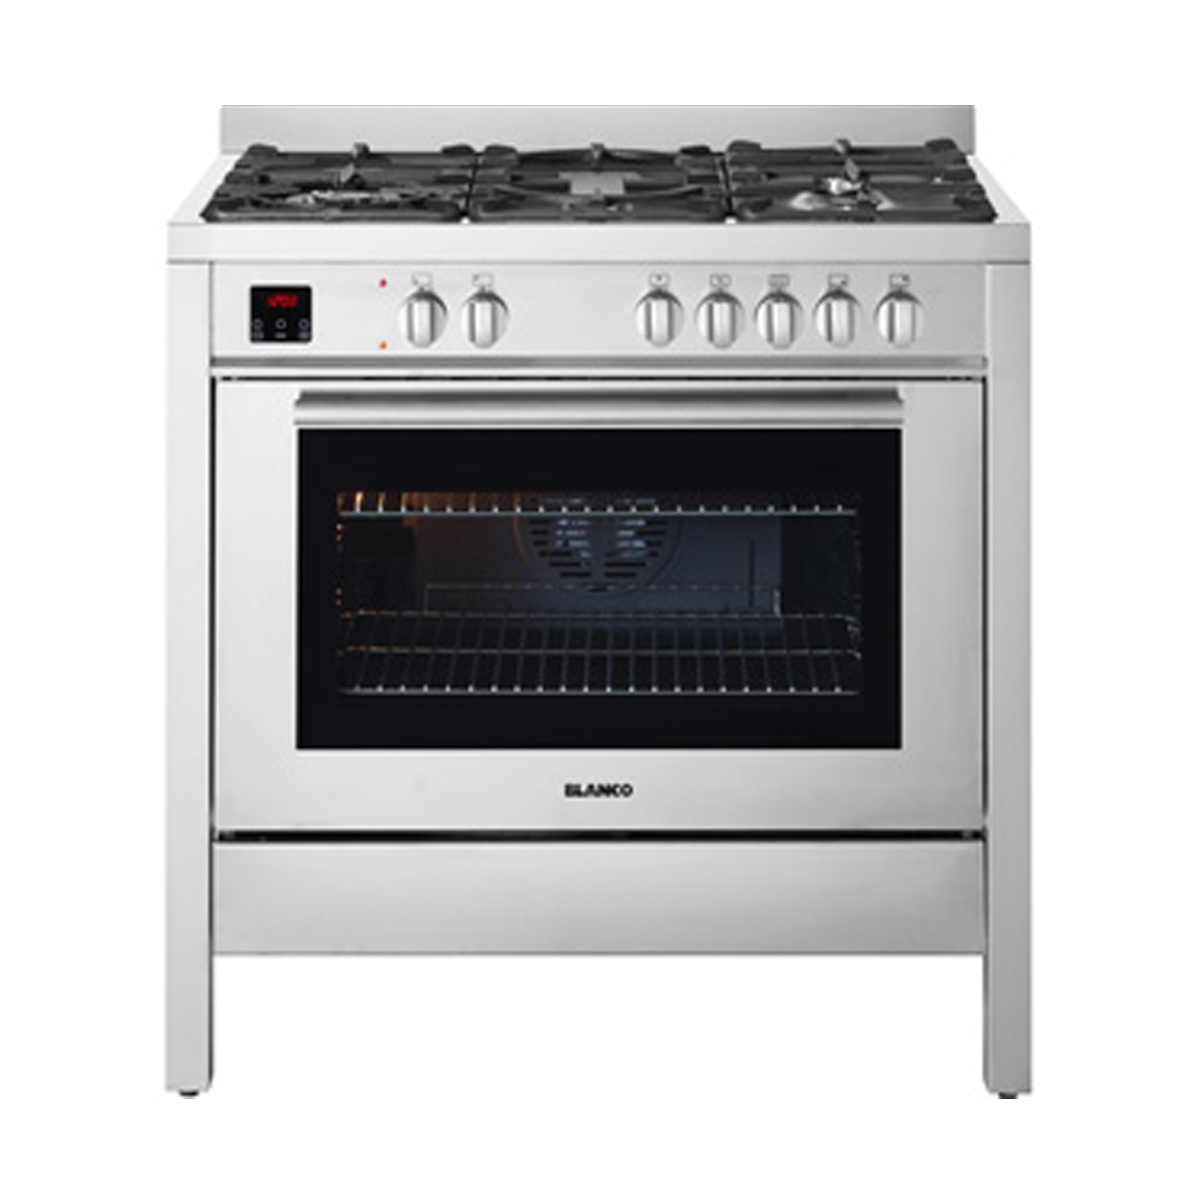 Blanco BFD9058FX 90cm Freestanding Cooker